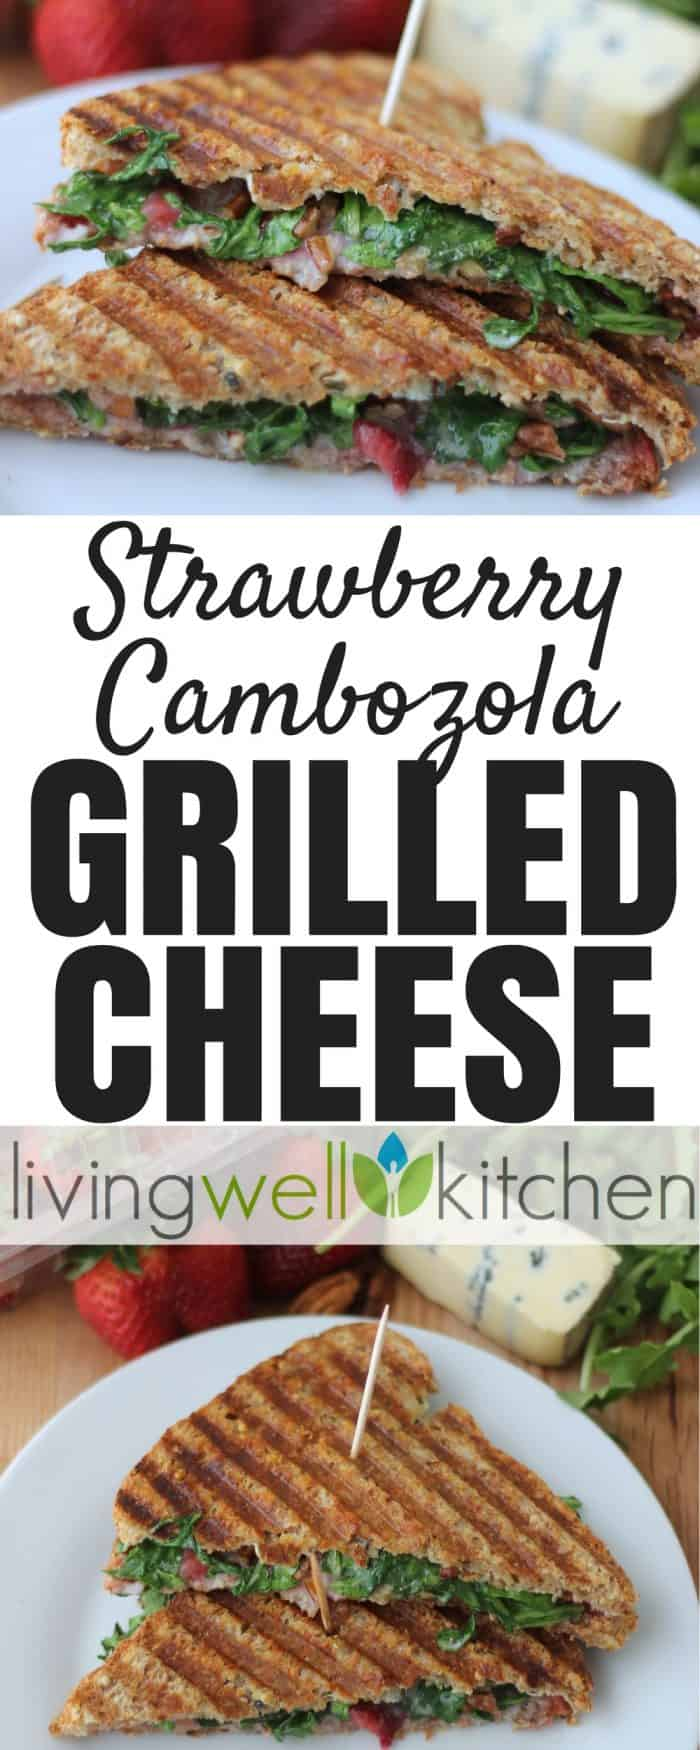 Strawberry Cambozola Grilled Cheese from @memeinge is a tasty grilled cheese packed with flavorful and creamy Cambozola, sweet strawberries, crunchy pecans, and spicy arugula